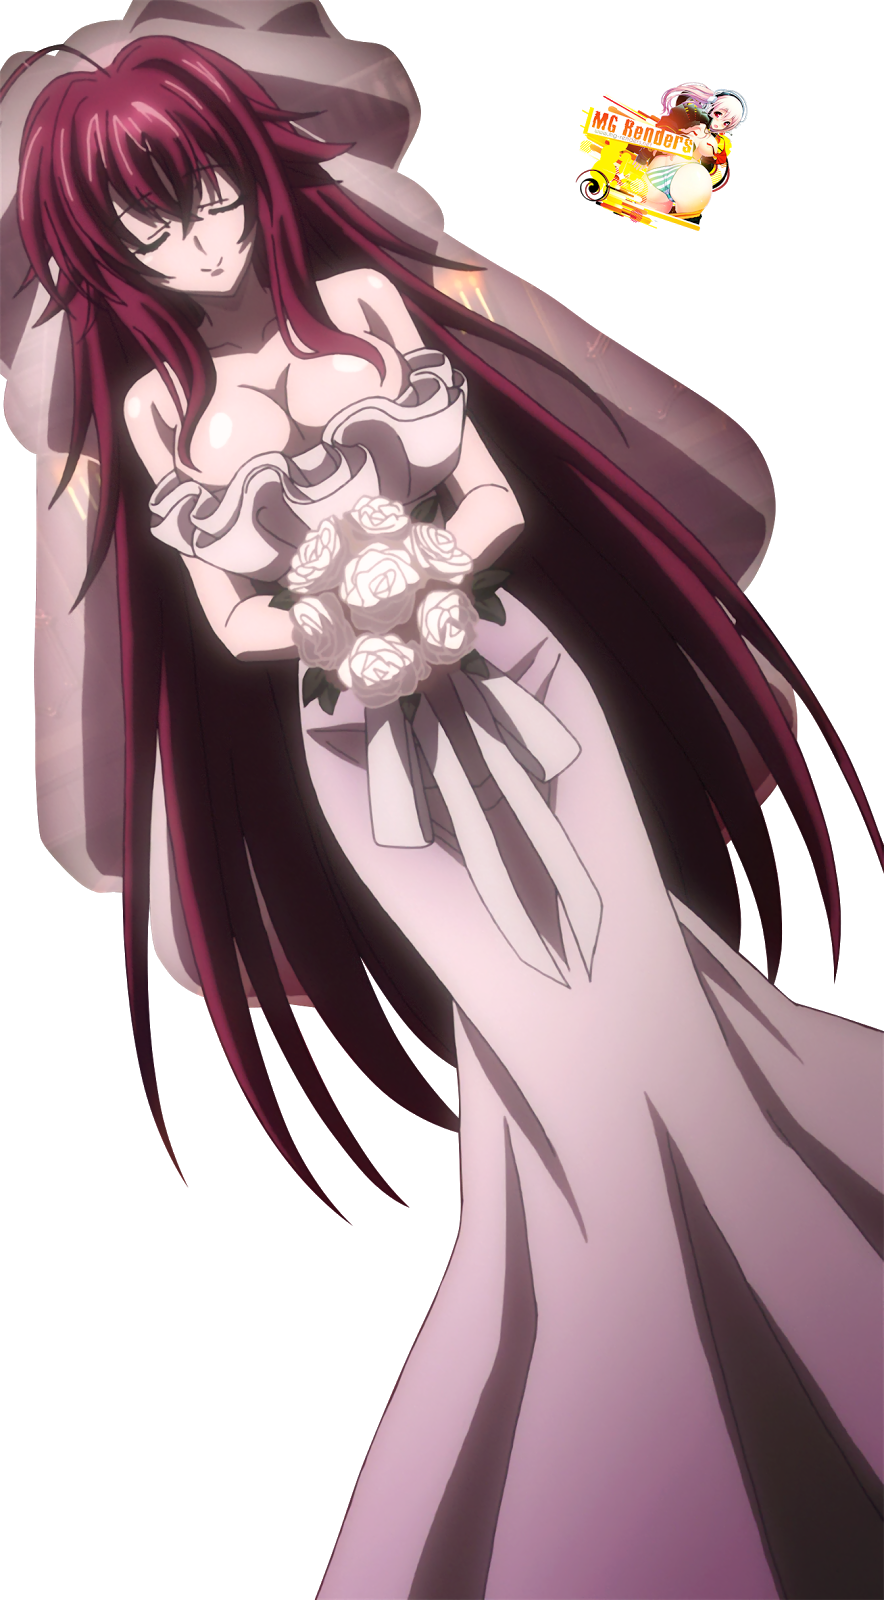 Tags: Anime, Render,  High School DxD, ハイスクールD×D, Haisukūru D×D,  Rias Gremory, リアス・グレモリー,  PNG, Image, Picture